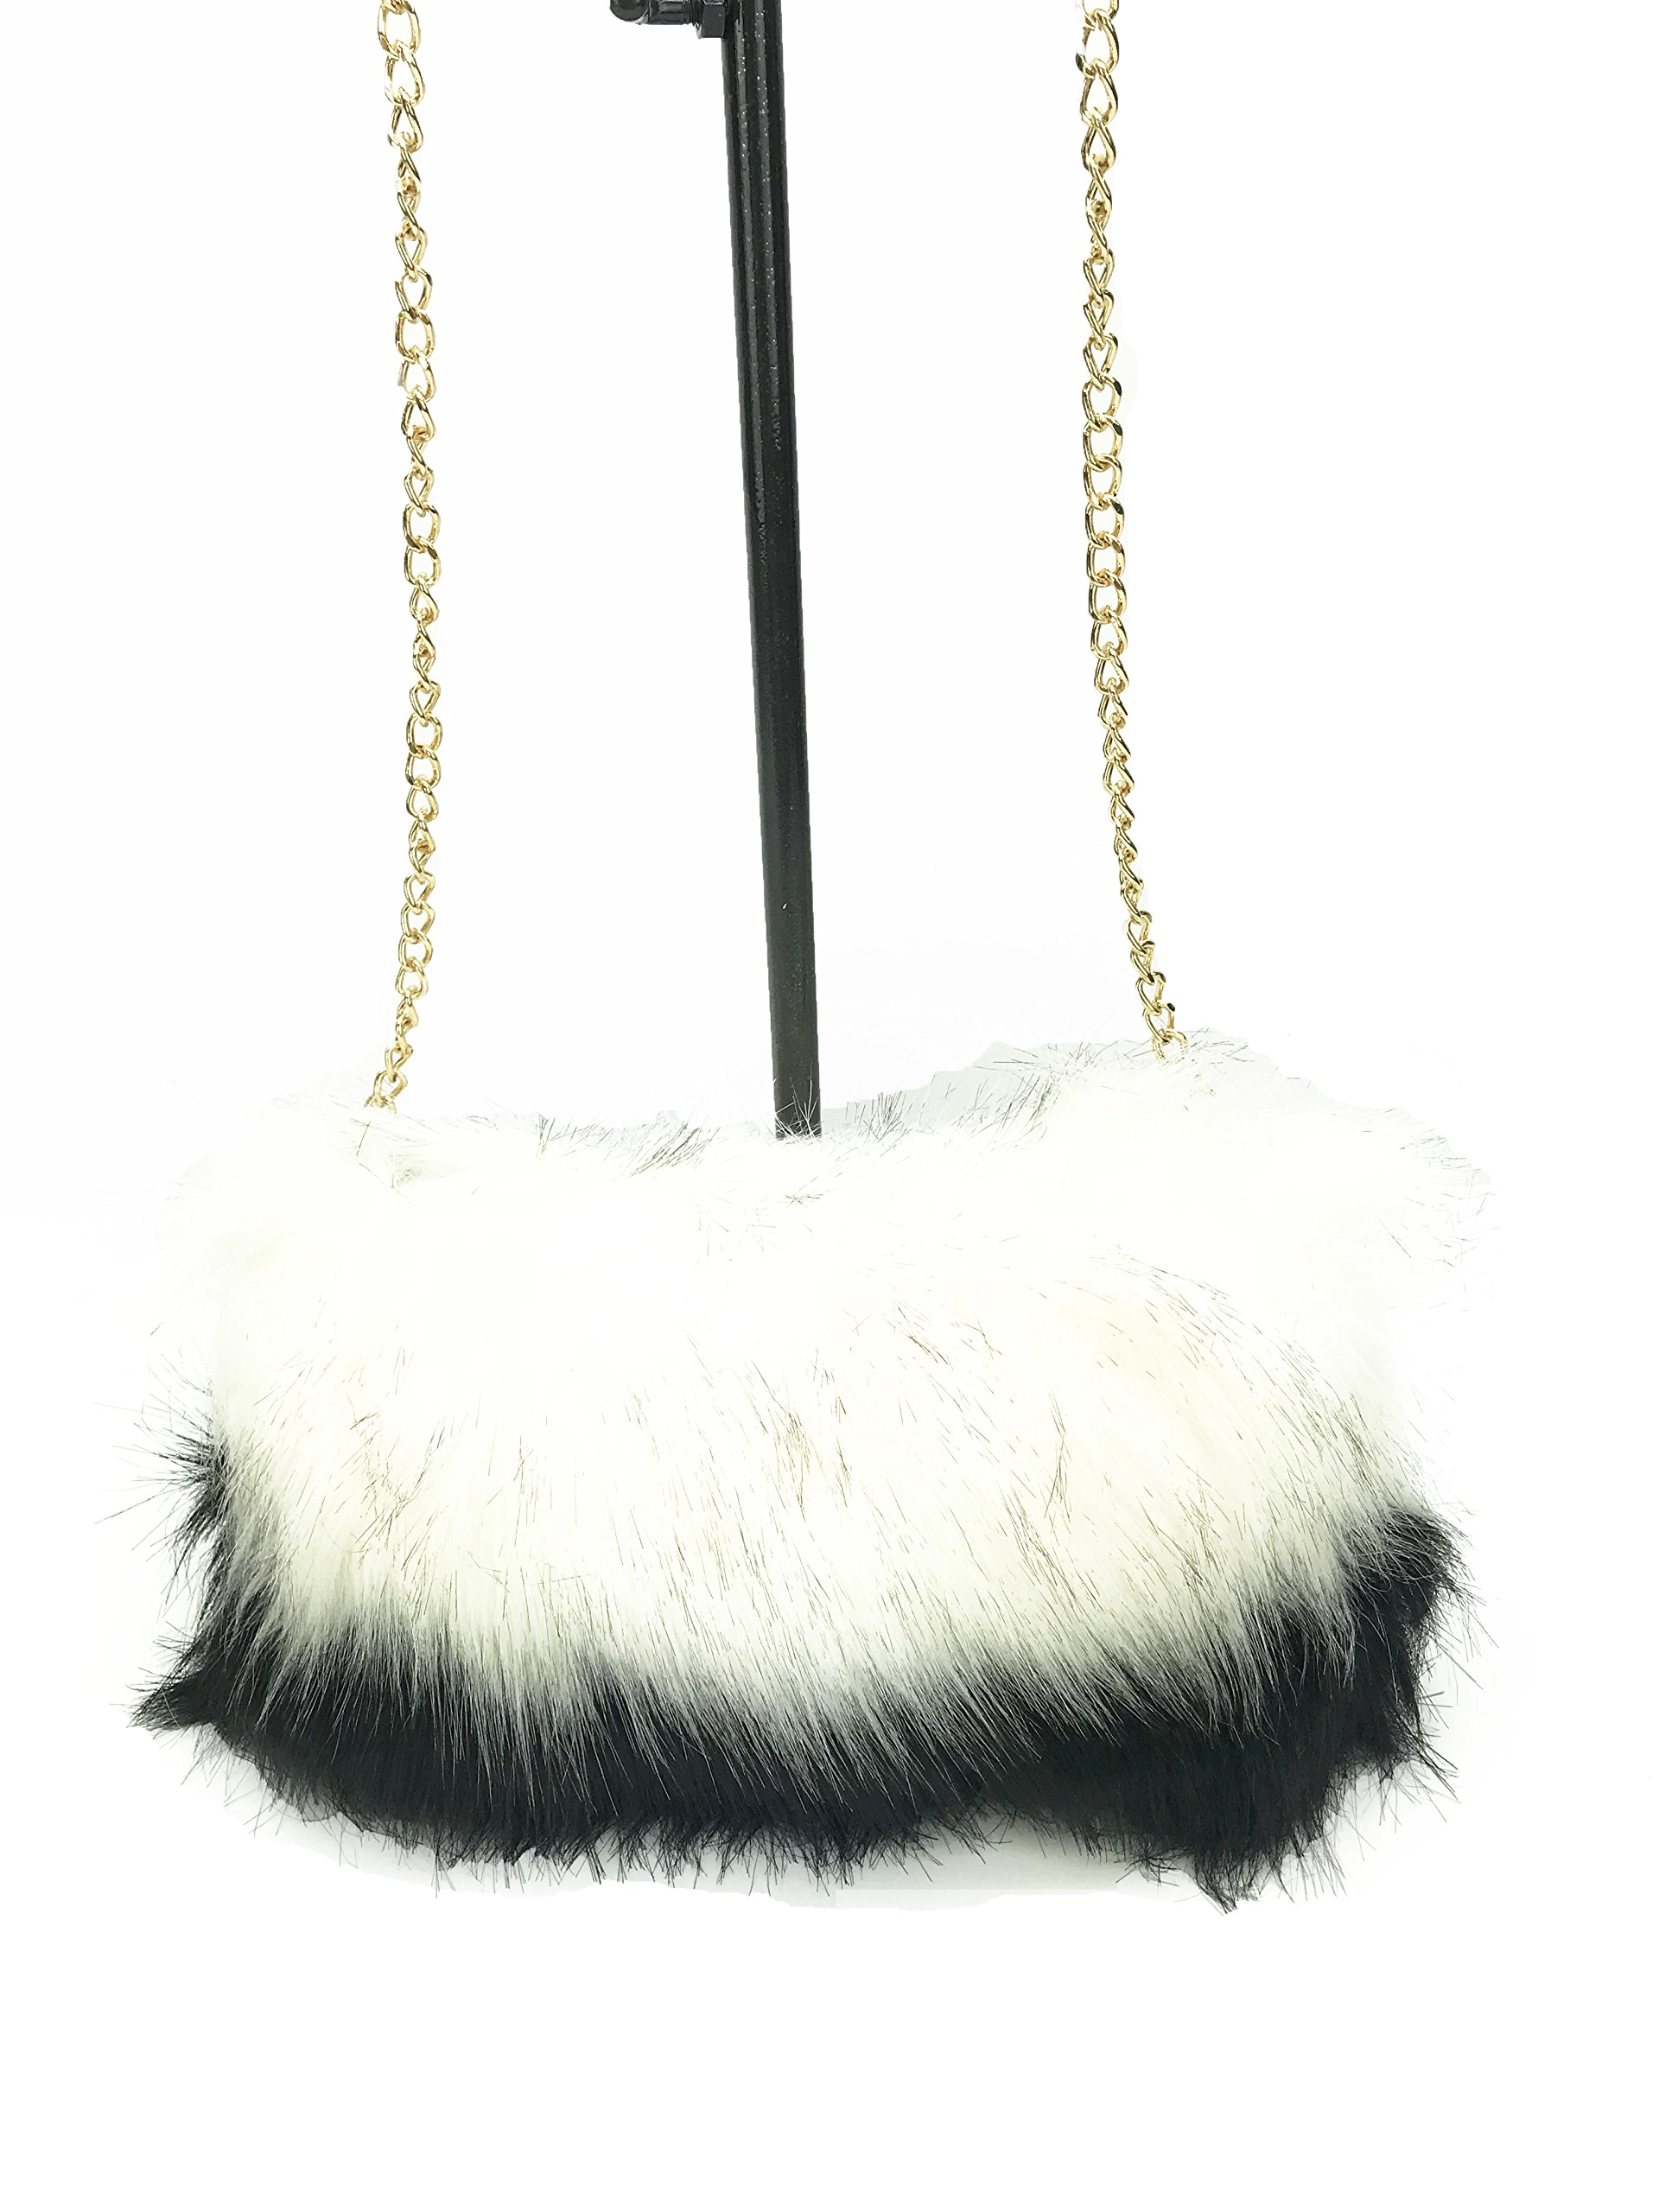 GoodCape ISABELLA Series faux fur two tone color sling bag with gold chain and zipper pocket by Goodcape (Image #1)